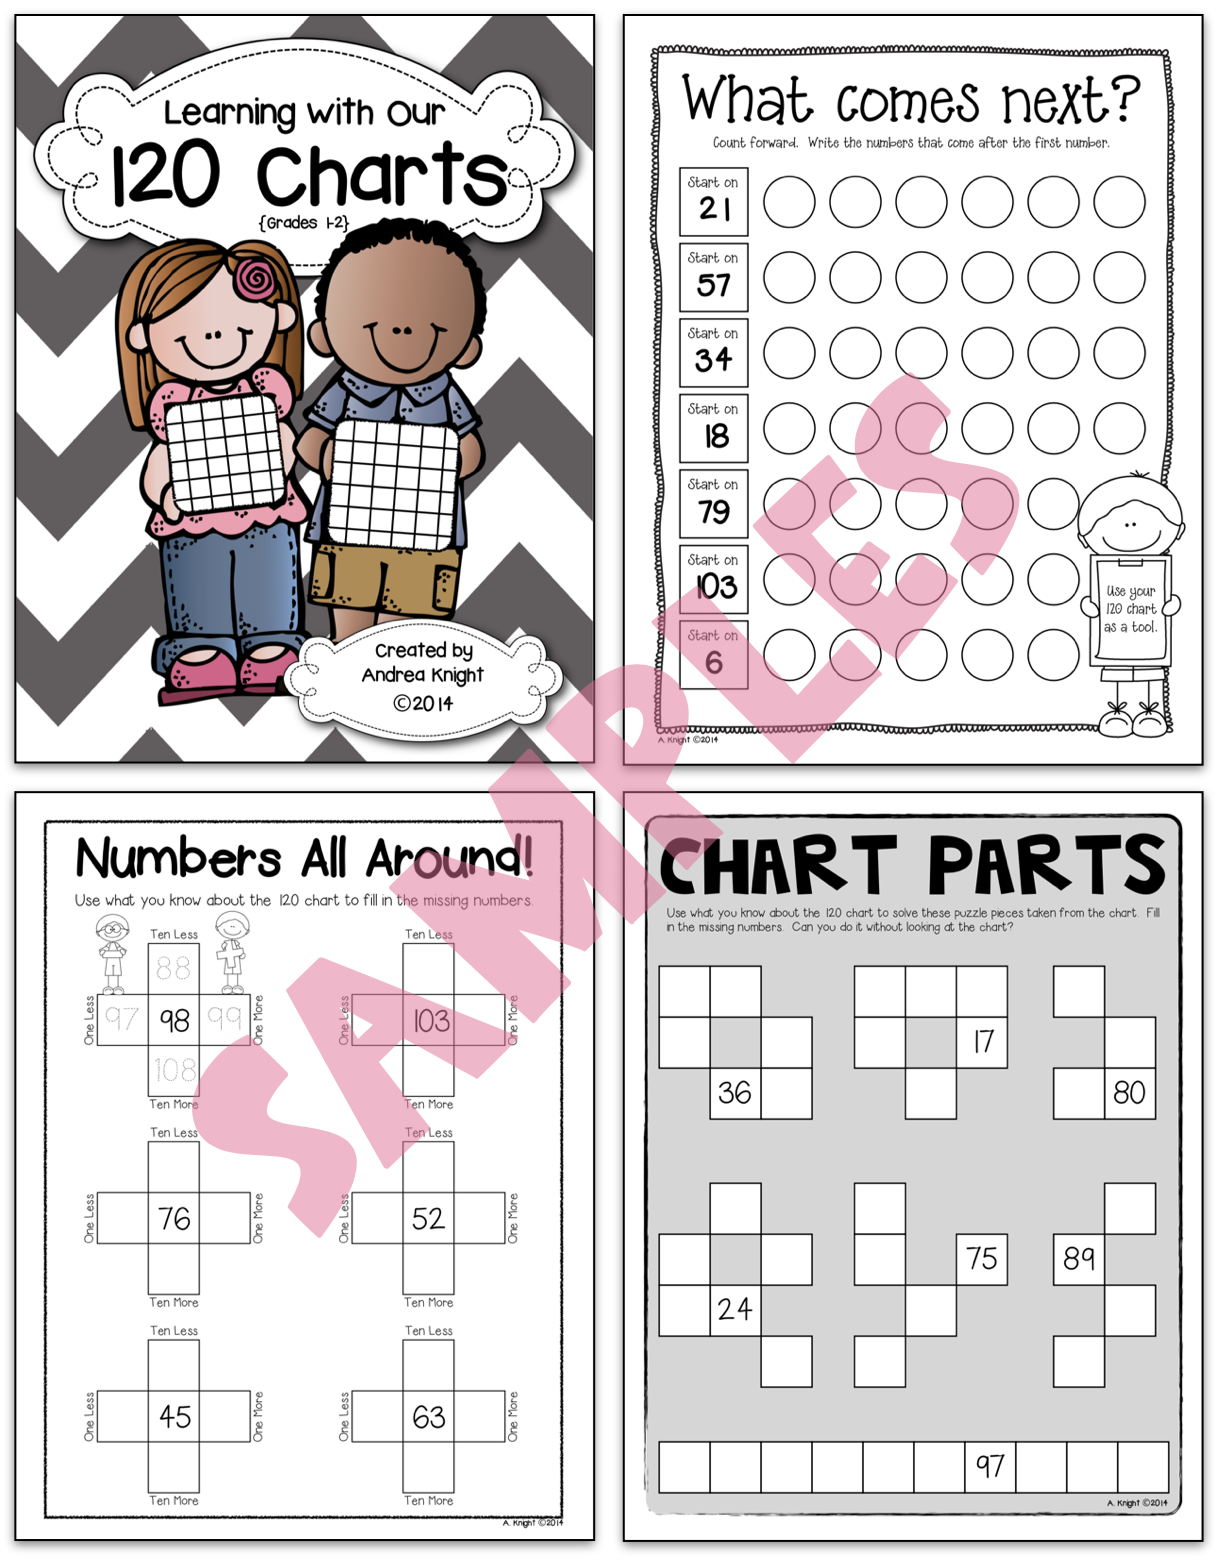 120 Charts Math Practice Worksheets For Grades 1 2 Distance Learning Math Practice Worksheets 1st Grade Worksheets Math Worksheets